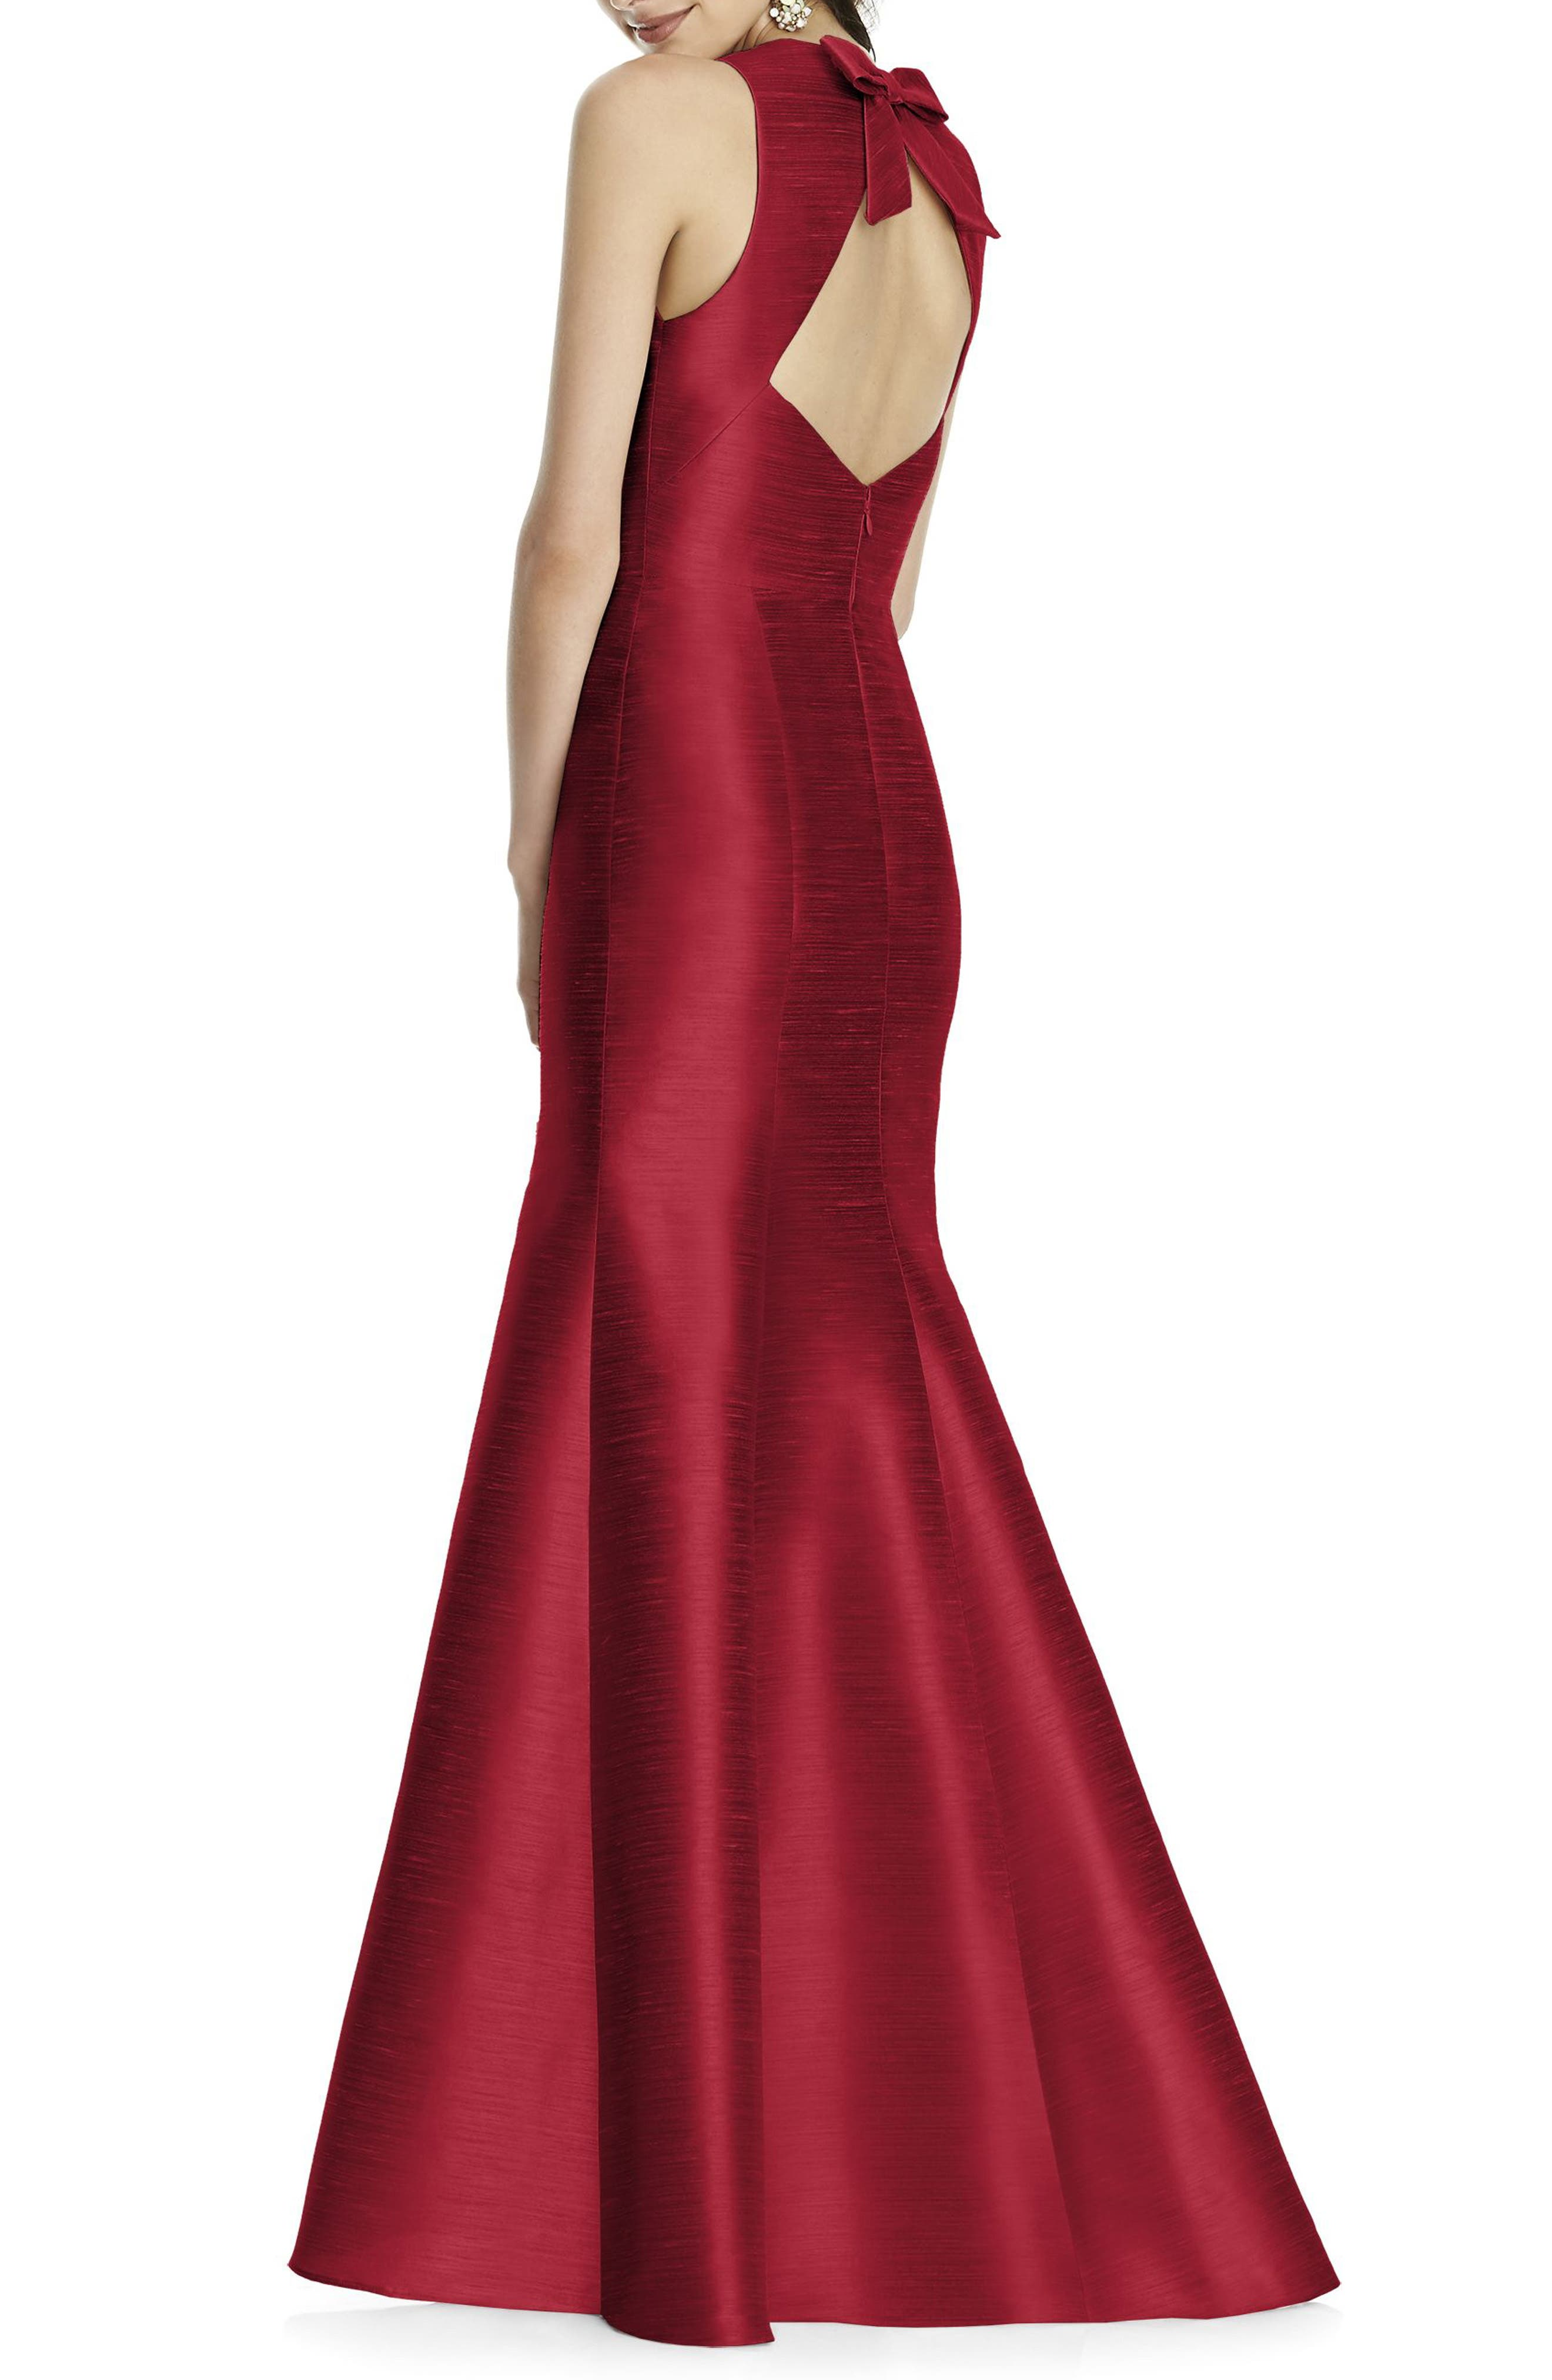 ALFRED SUNG, Dupioni Trumpet Gown, Alternate thumbnail 2, color, BARCELONA